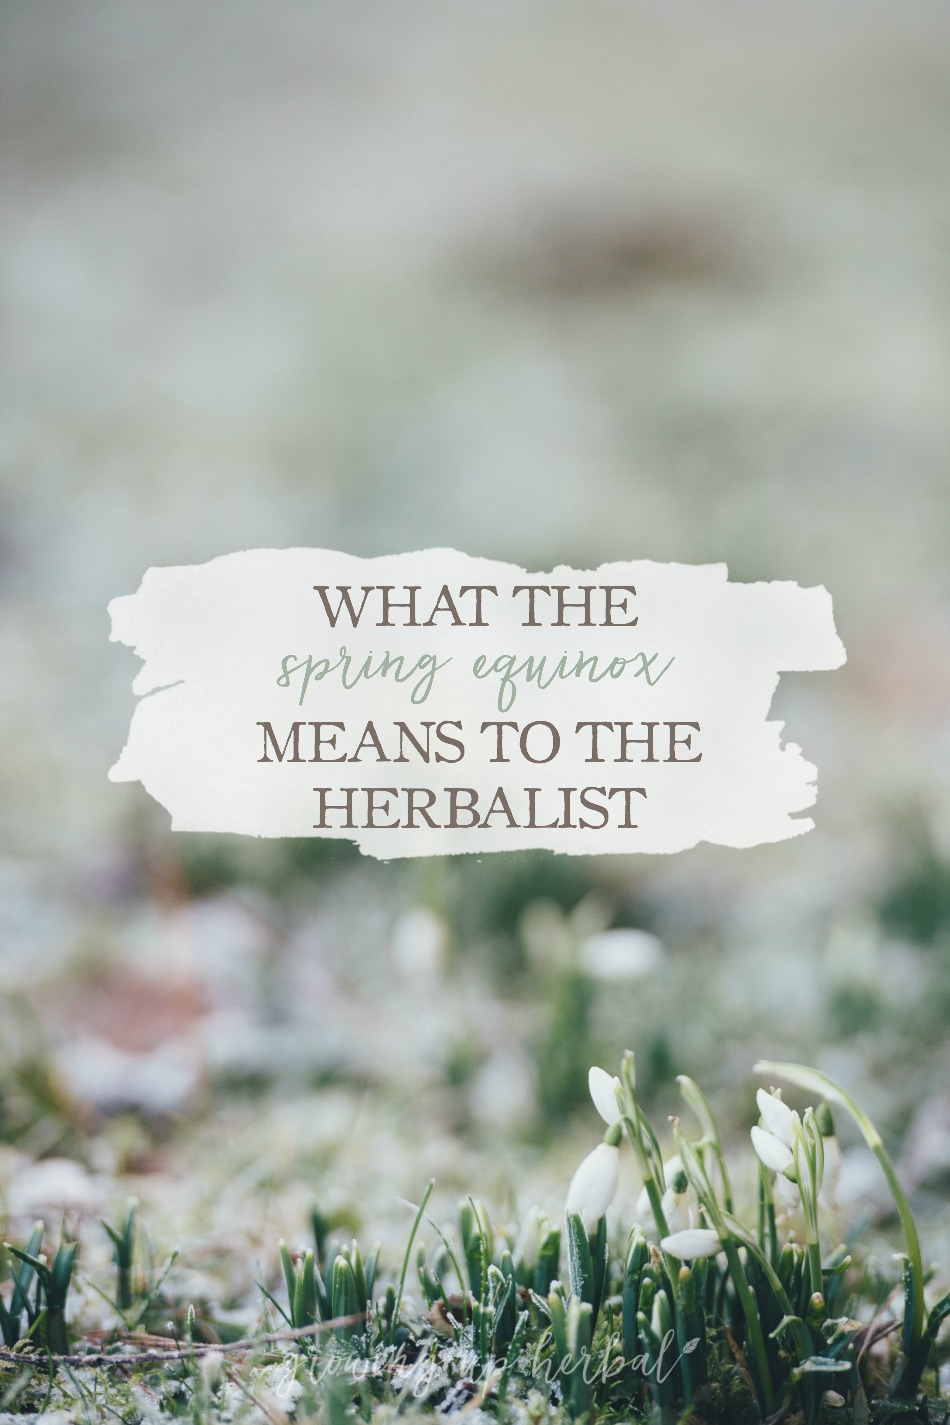 What The Spring Equinox Means To The Herbalist | Growing Up Herbal | Ever wondered how the changing of the seasons impacts you as an herbalist? Read more here to find out some interesting facts about the Spring Equinox as well as what it means to the herbalist.